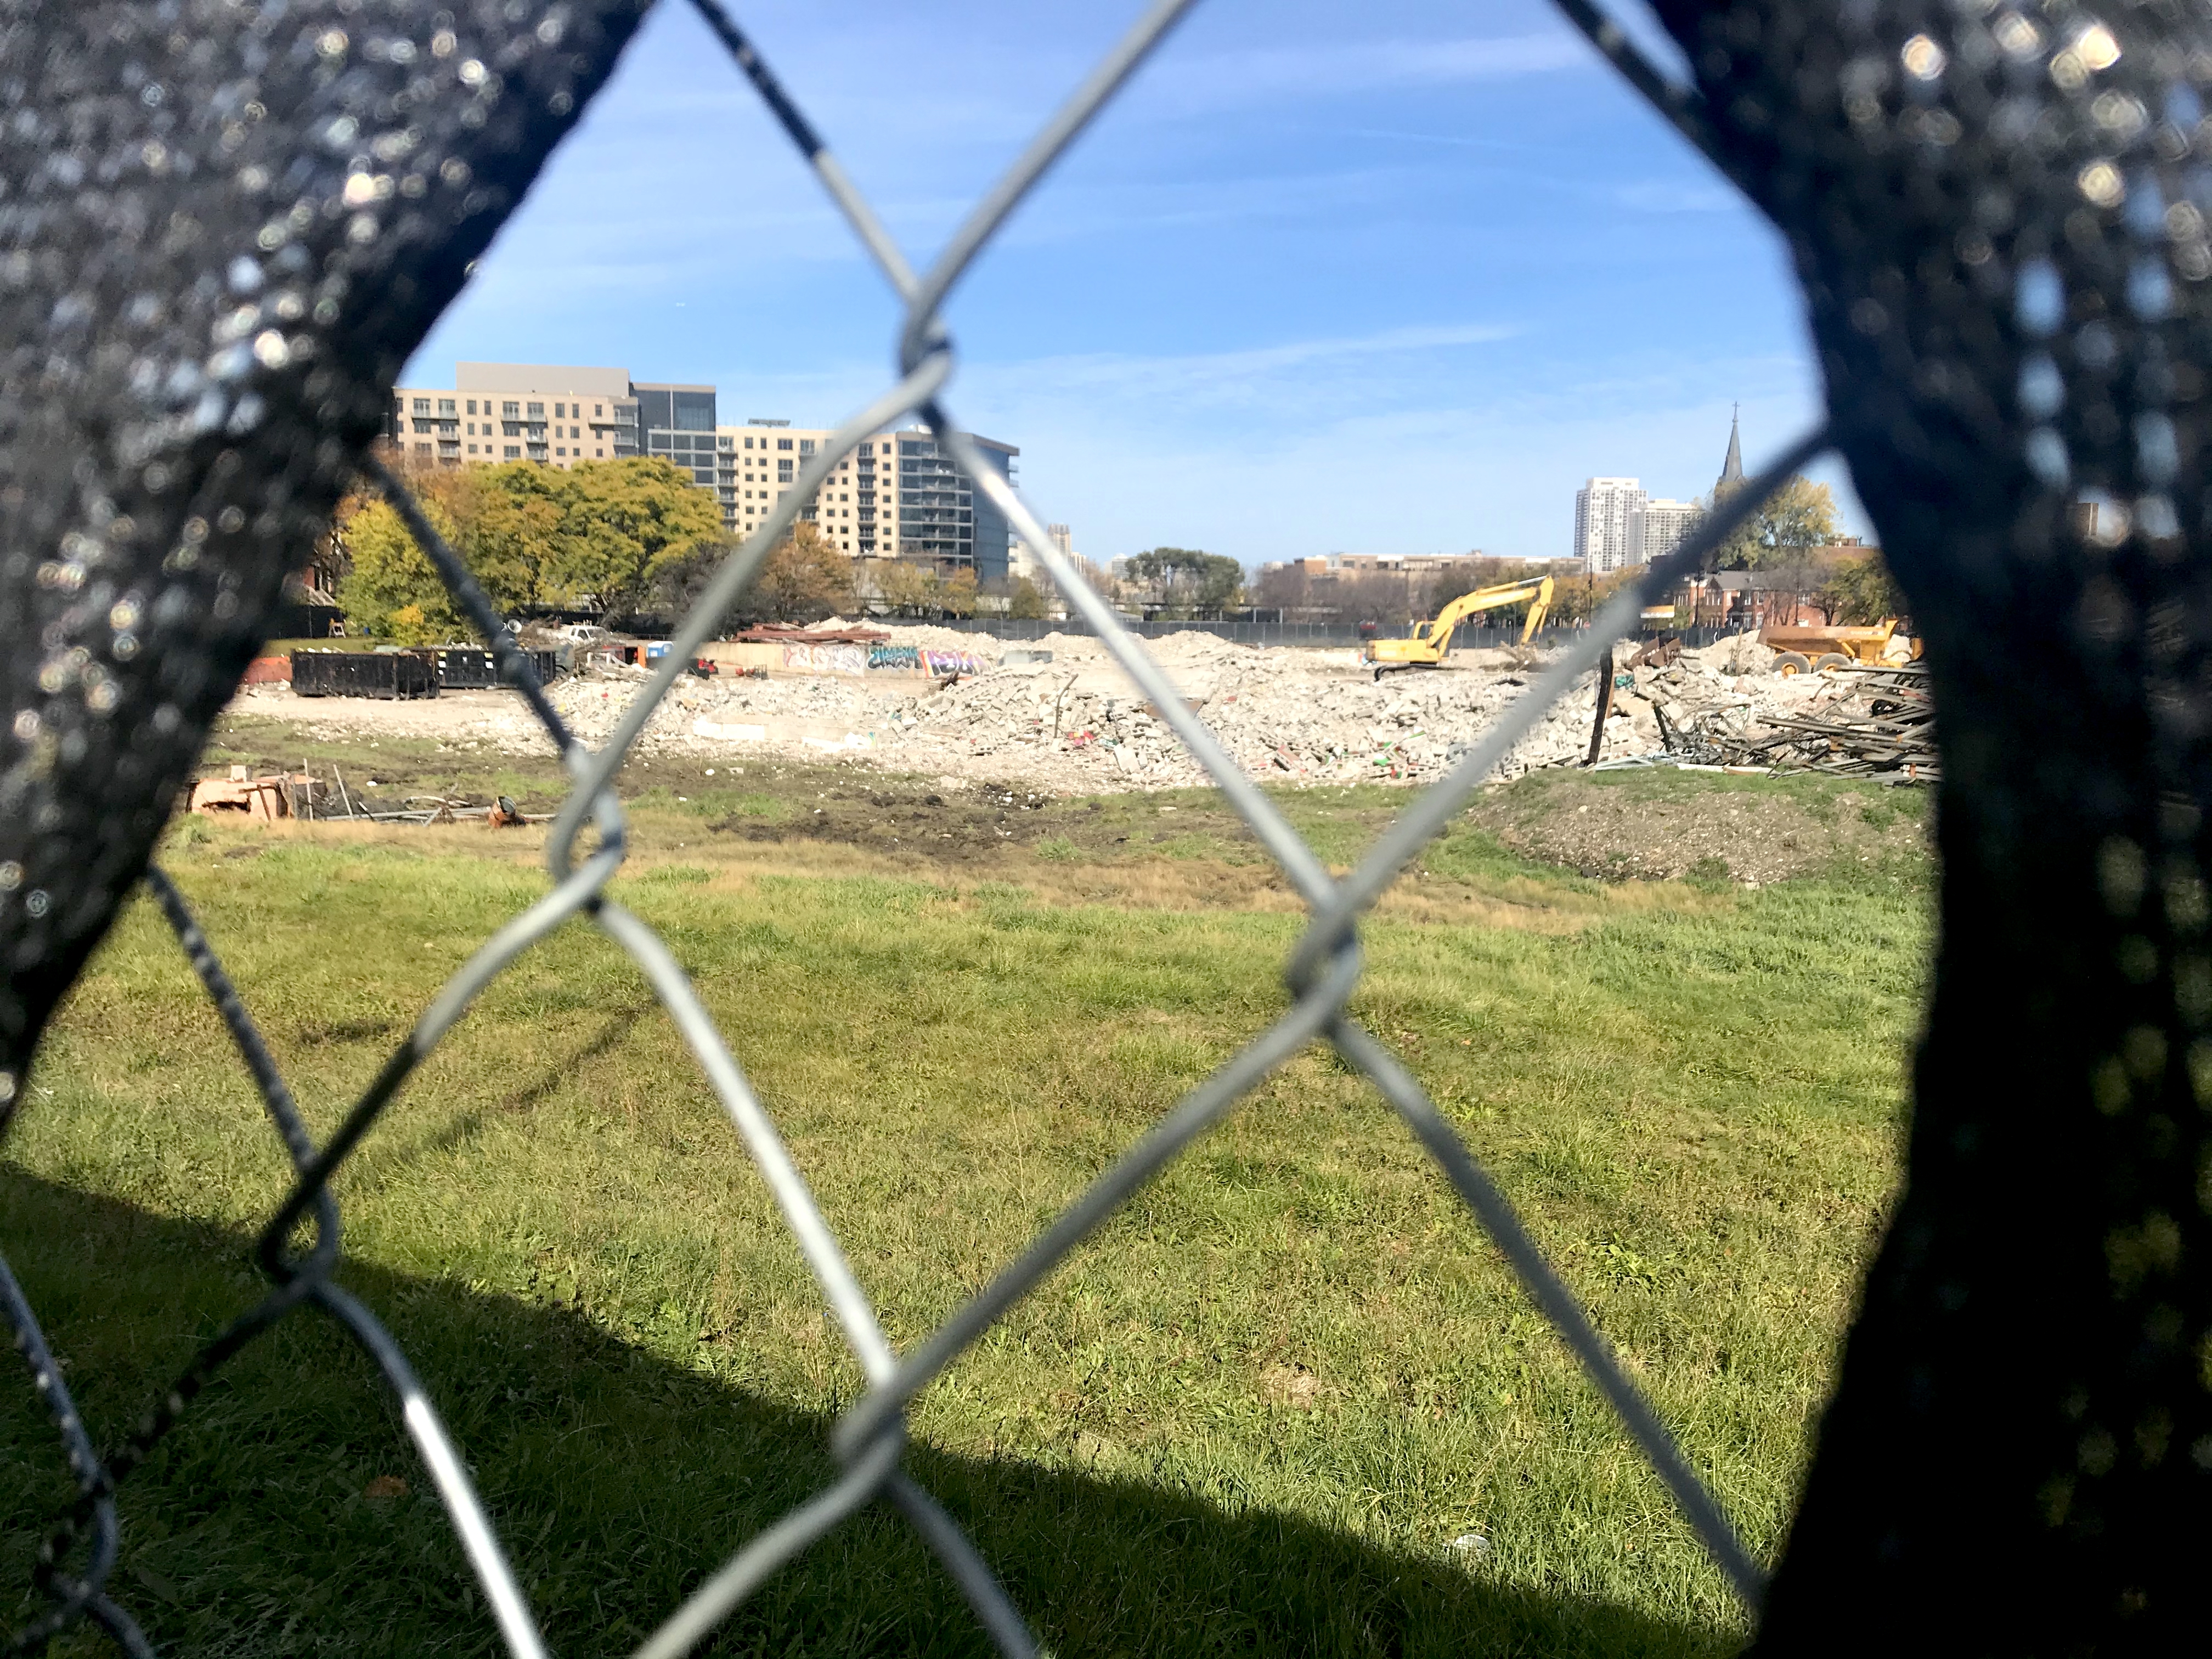 New constructions are being done in the former Cabrini-Green neighborhood